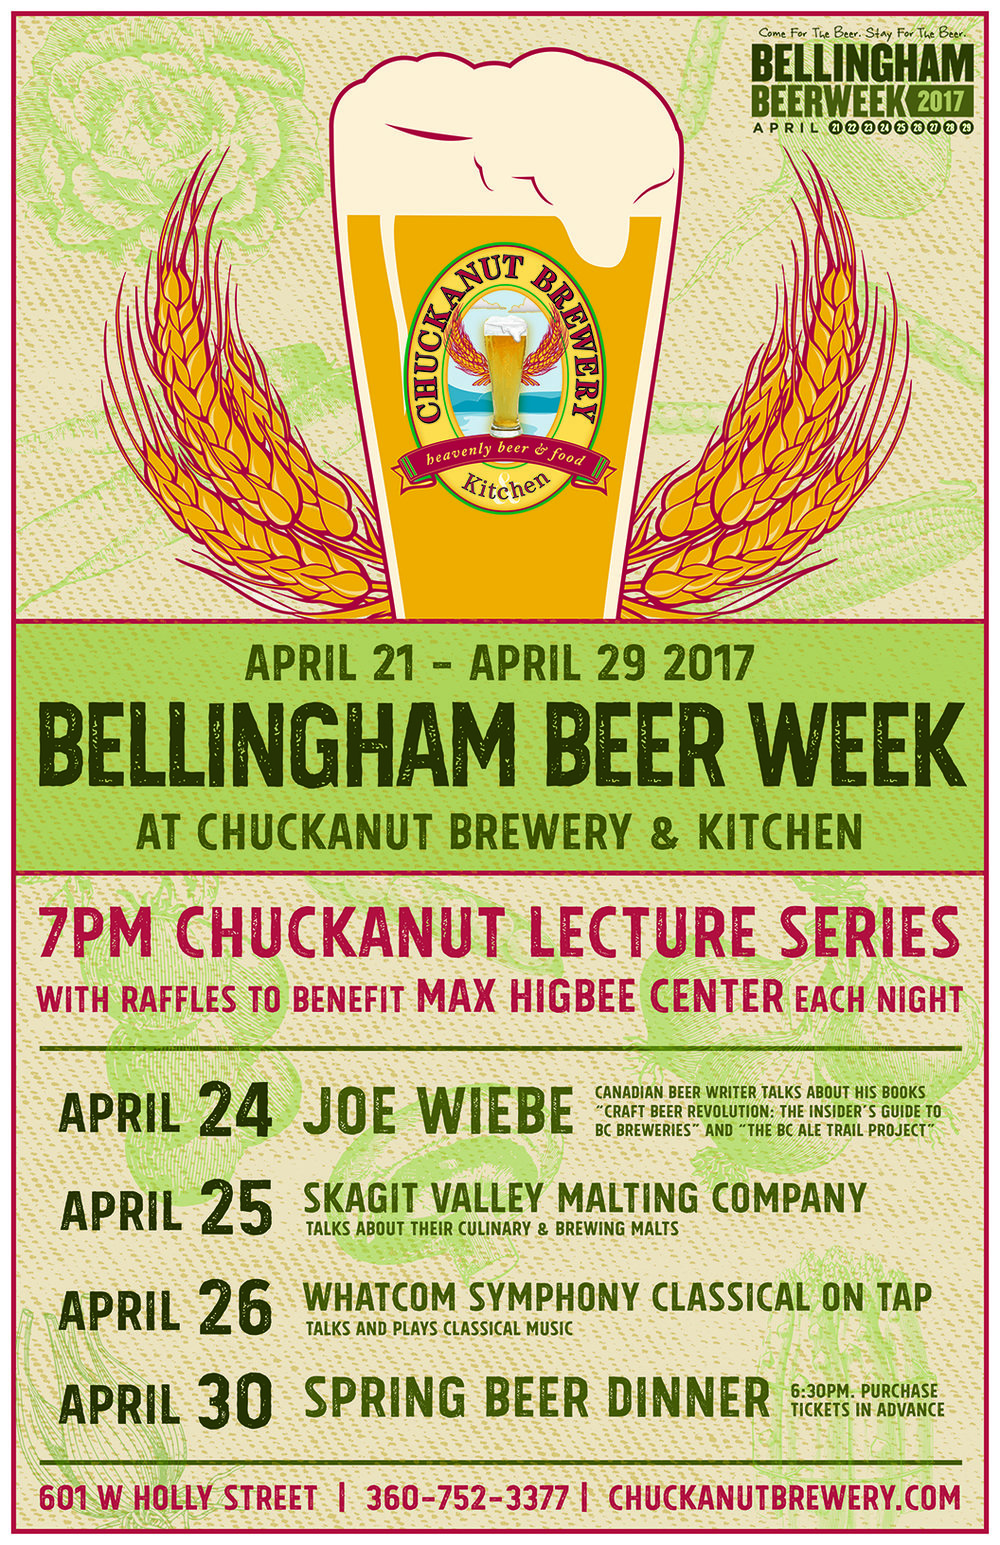 Bellingham Beer Week 2017